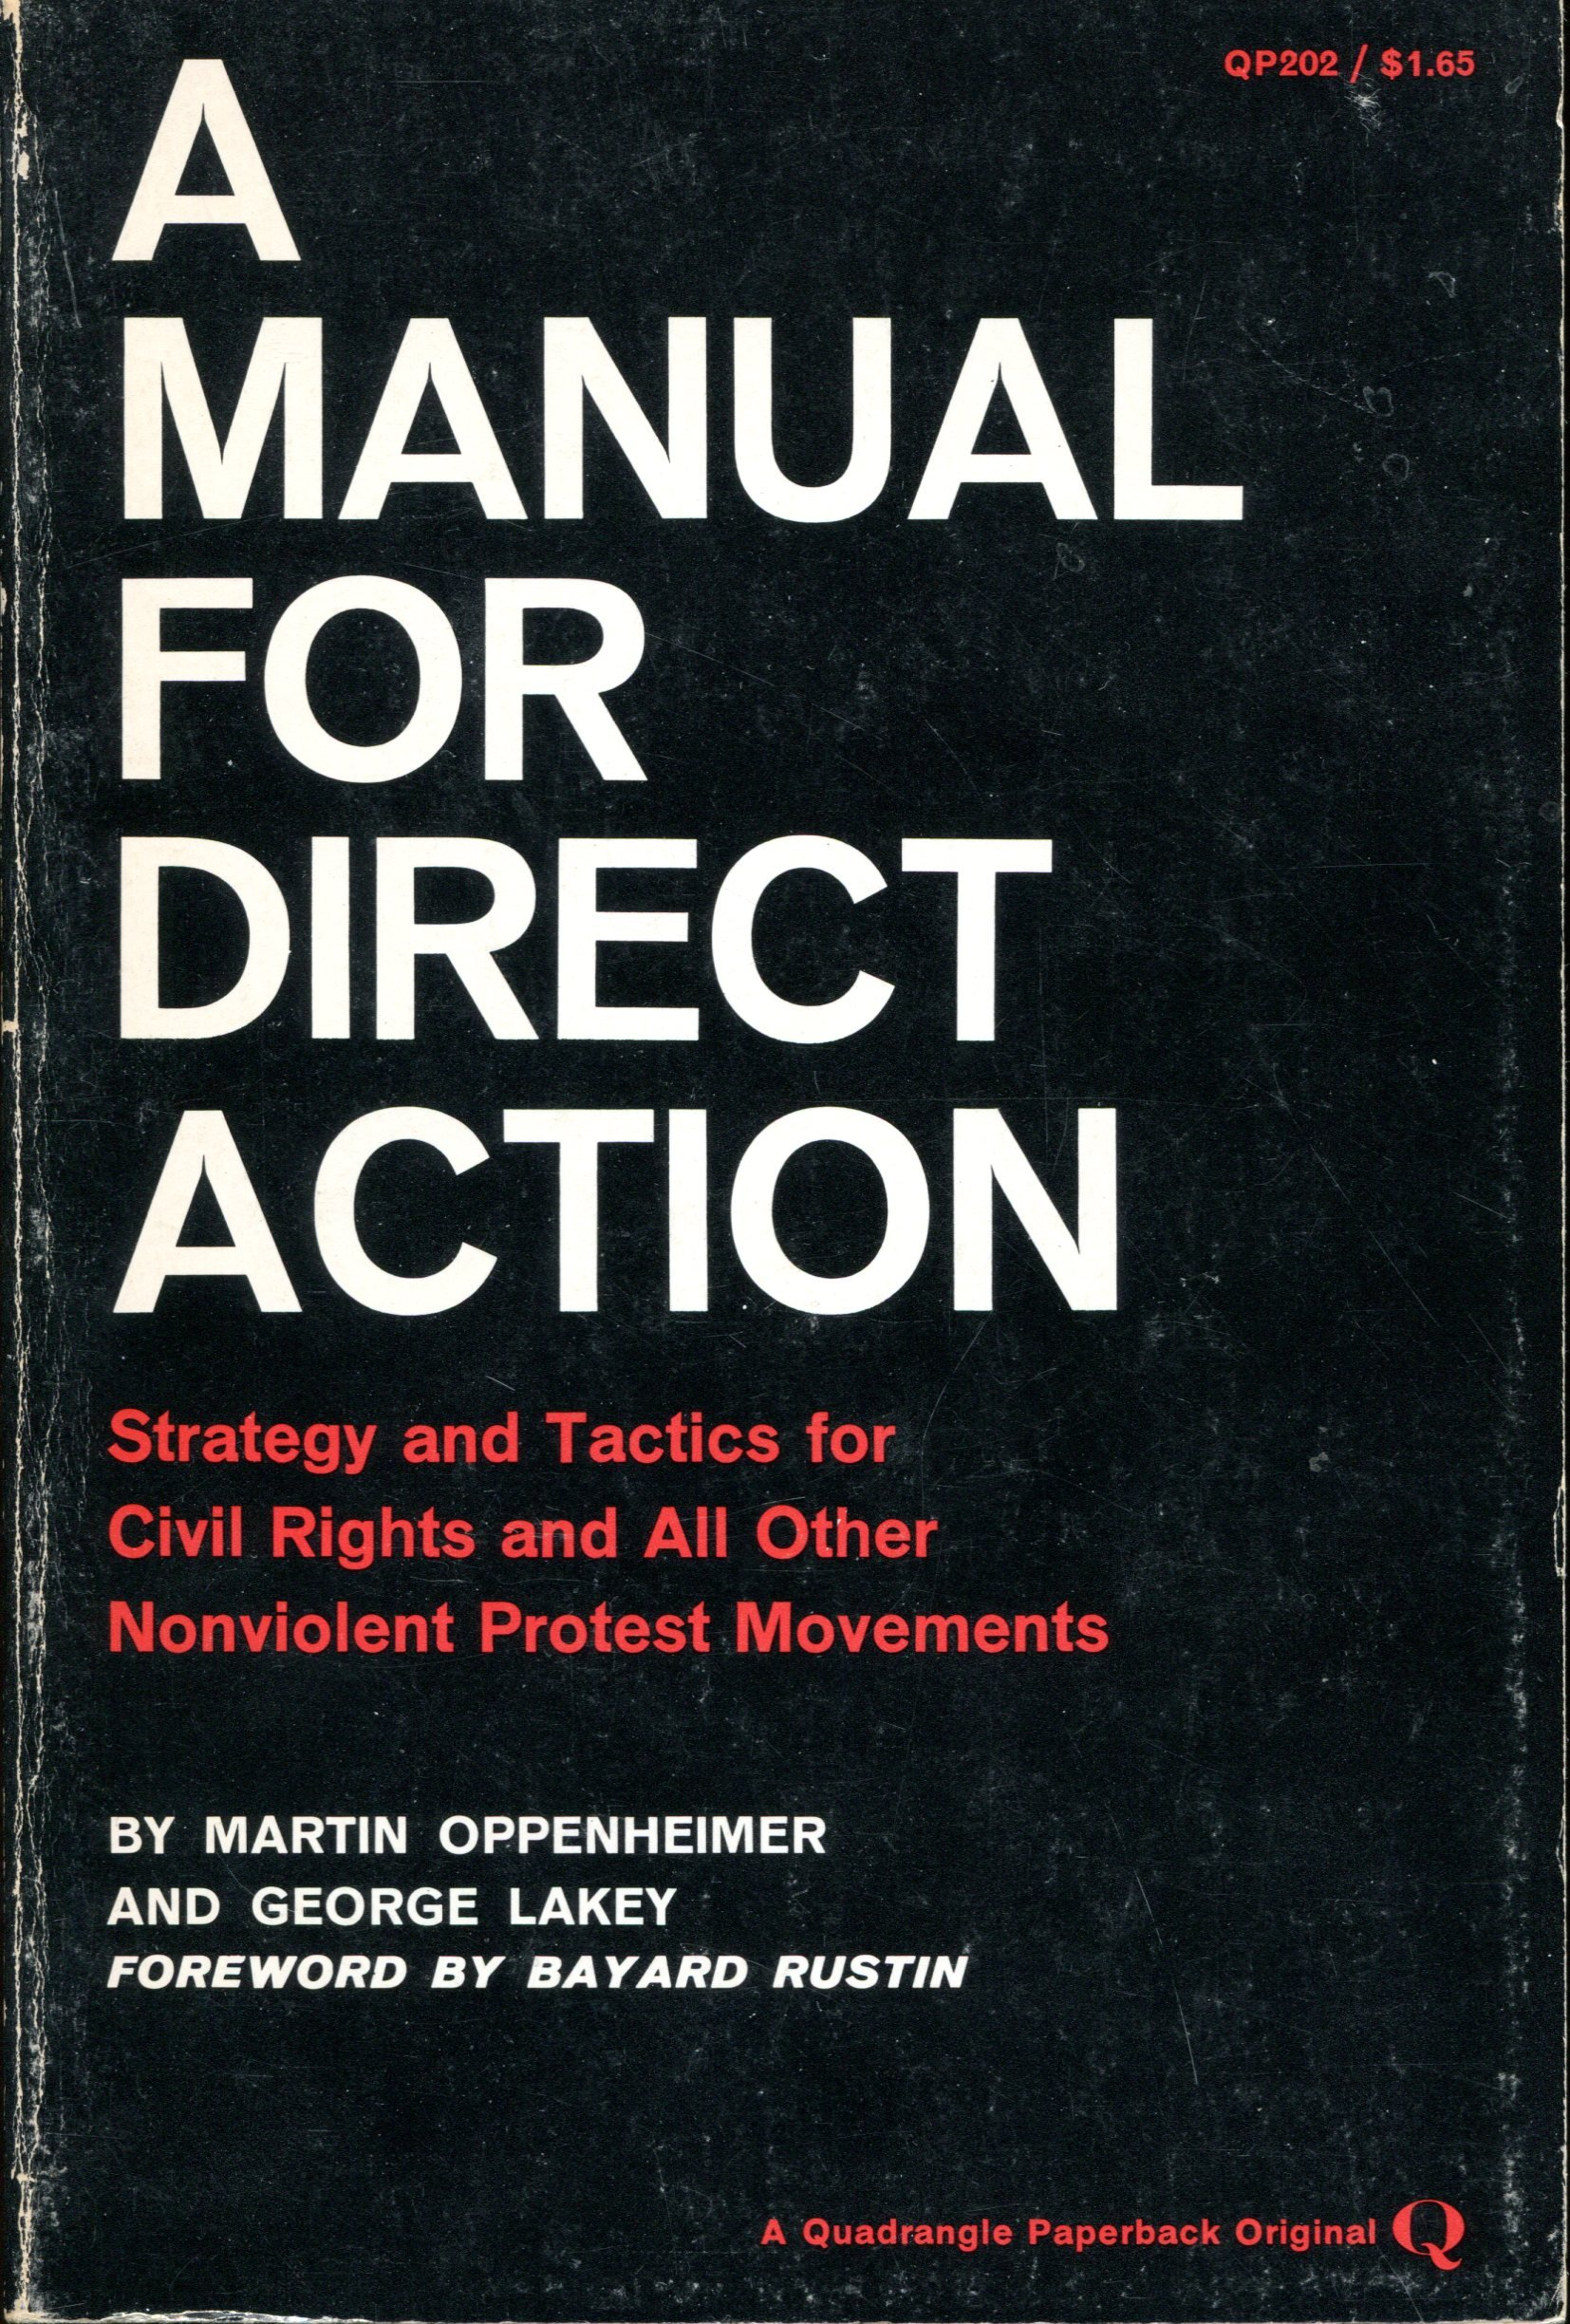 A Manual for Direct Action: Strategy and Tactics for Civil Rights and All Other Nonviolent Protest Movements, Martin Oppenheimer; George Lakey